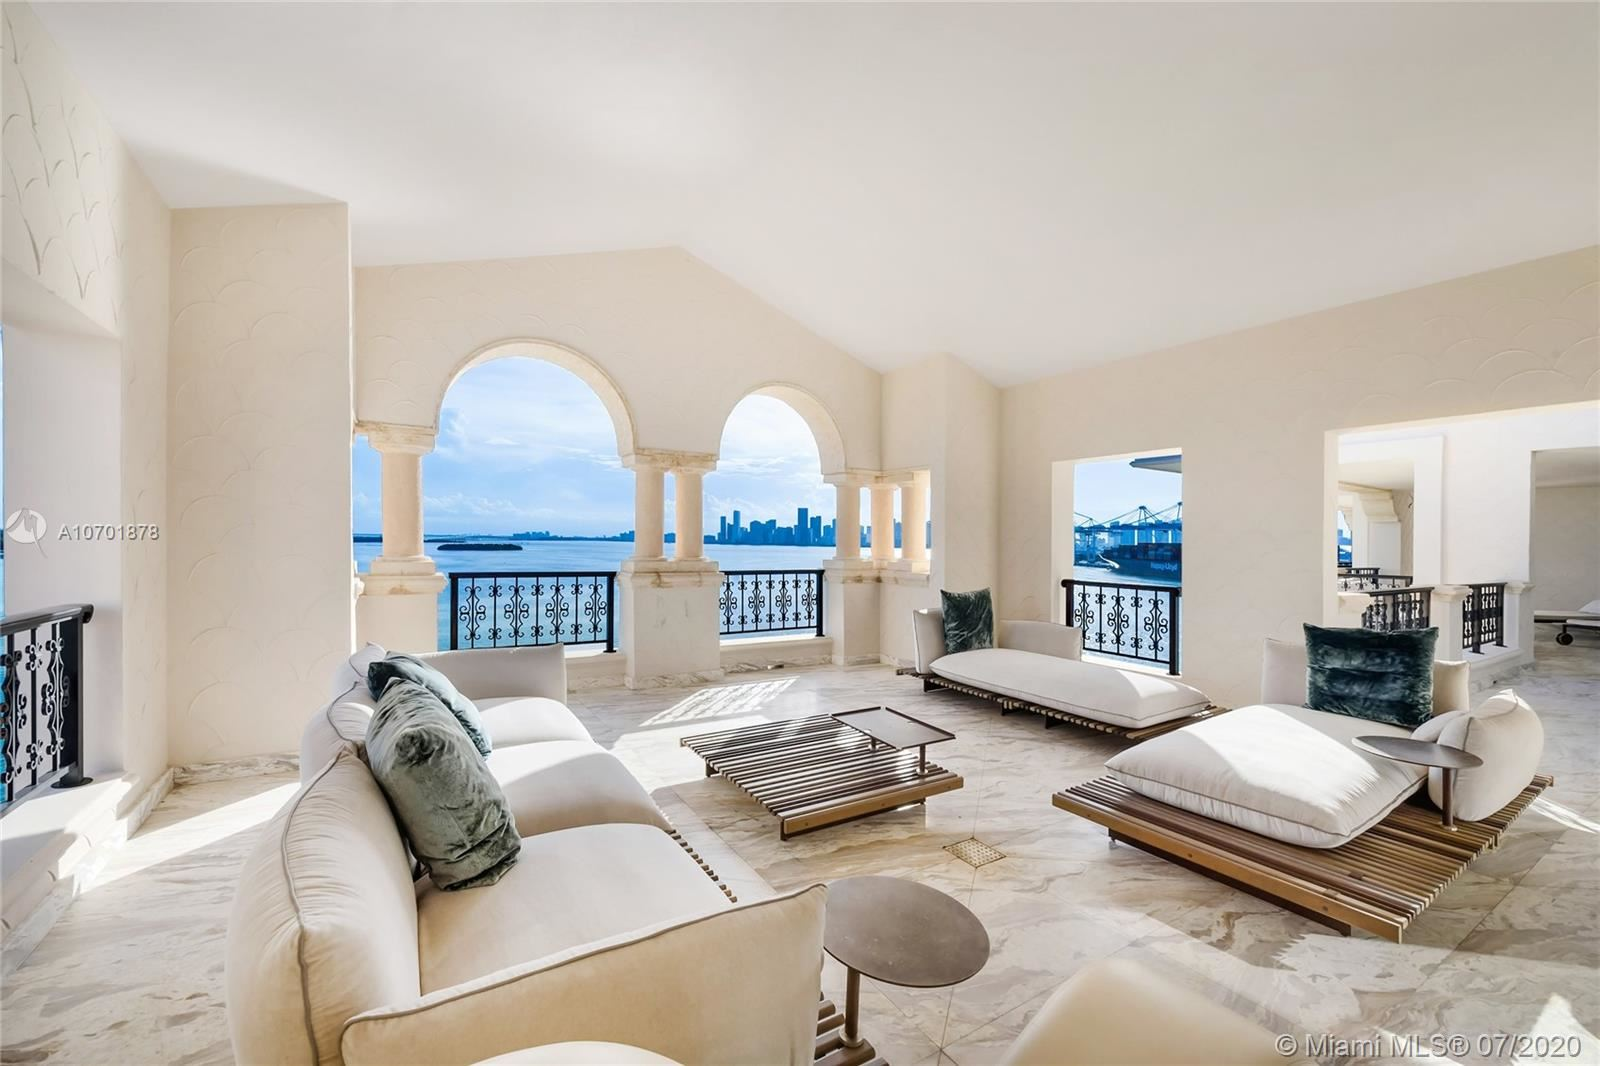 Photo 24 of Listing MLS a10701878 in 5292 Fisher Island Dr #5292 Miami FL 33109